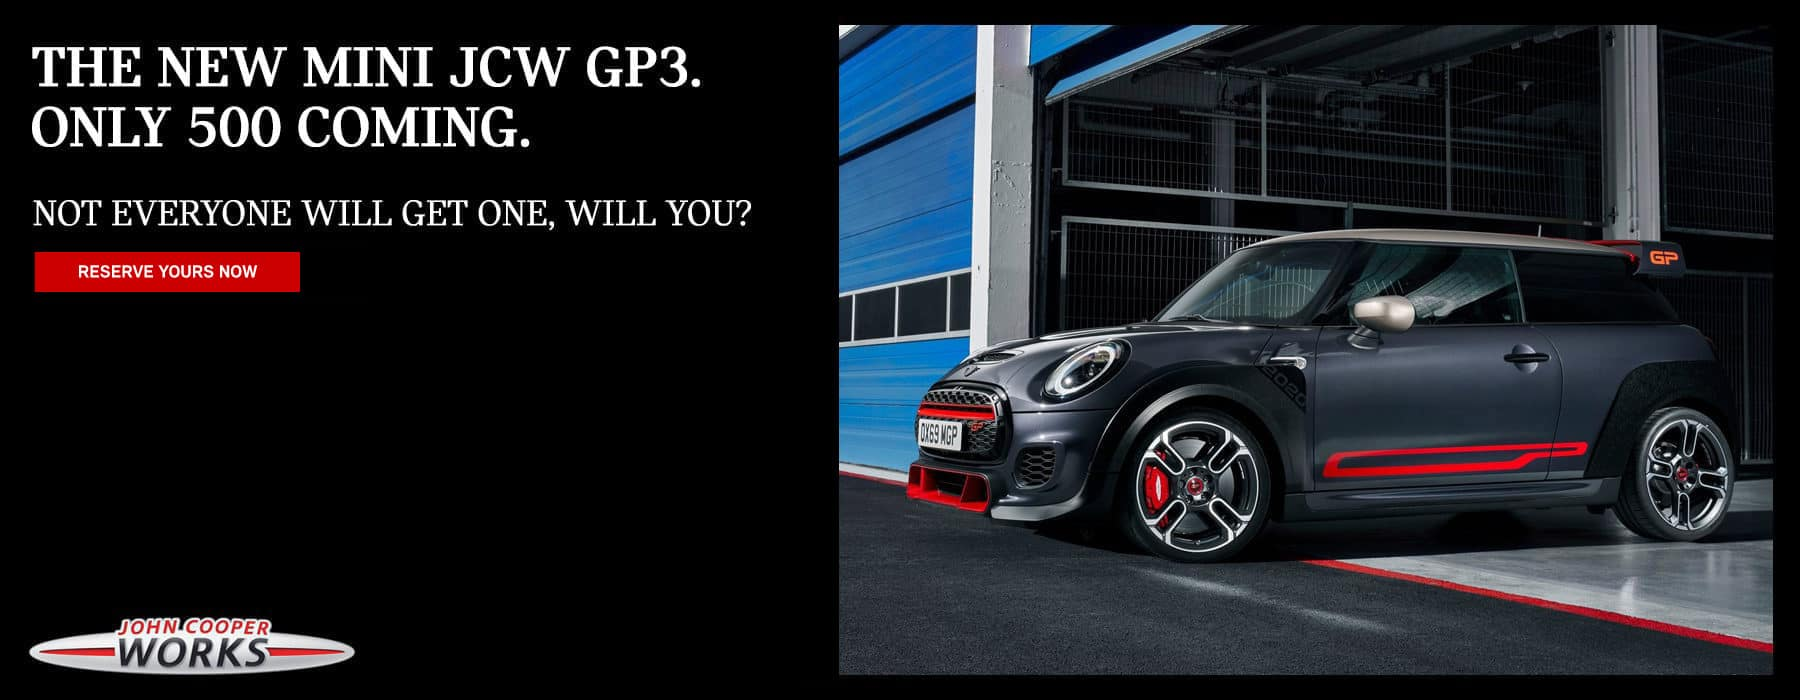 The all-new MINI JCW GP3 parked at a race track.